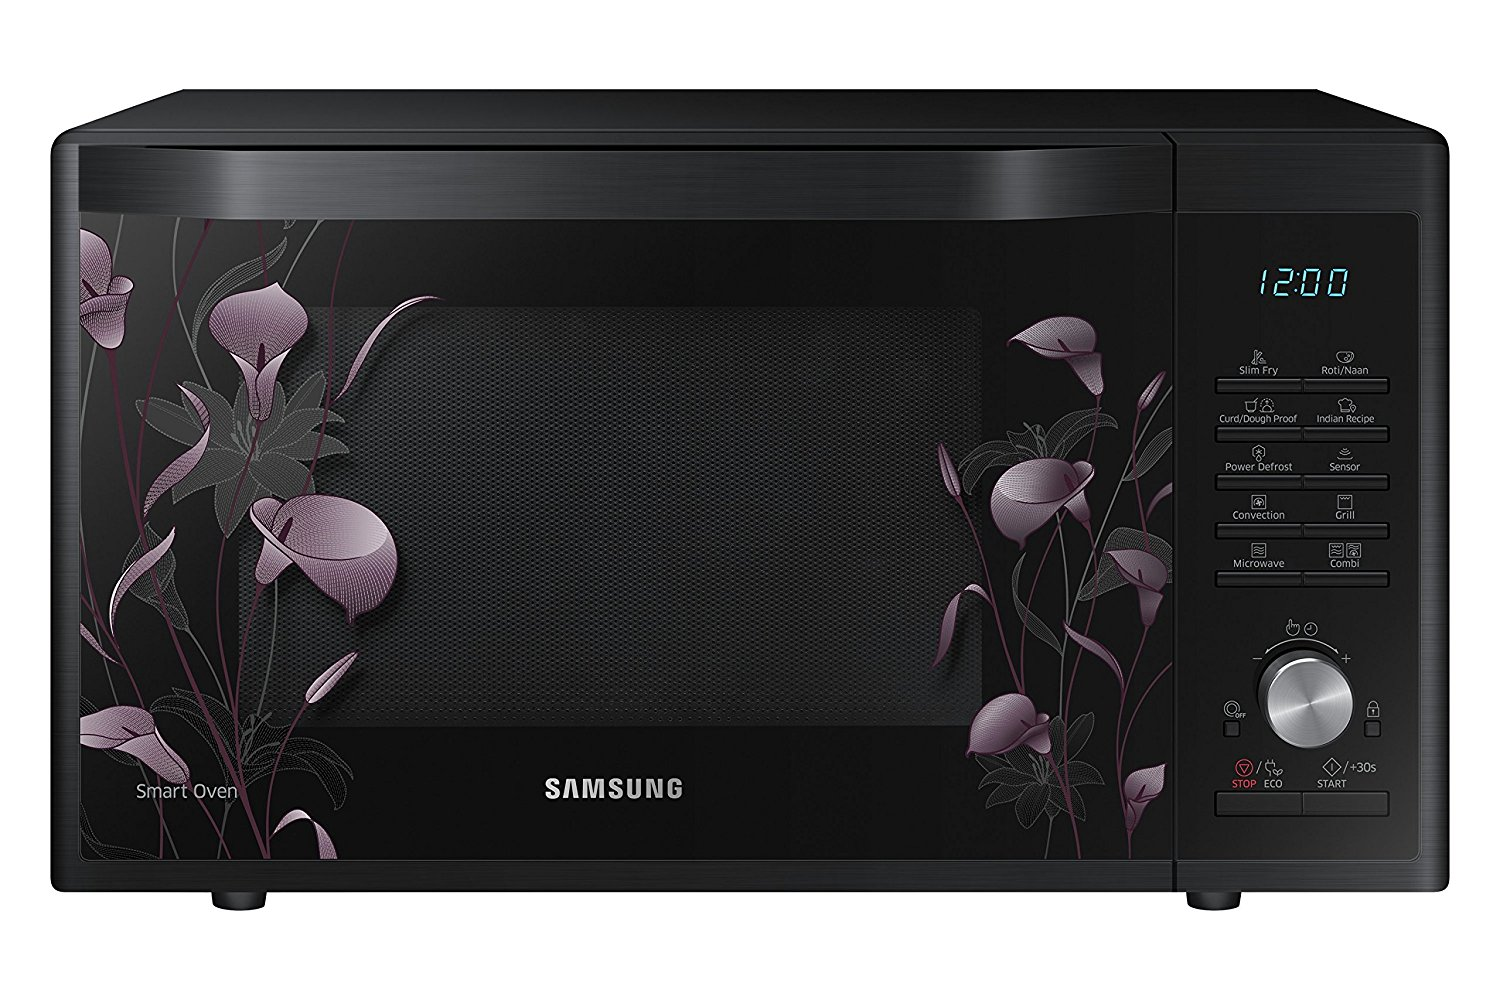 Samsung 32 L Convection Microwave Oven (MC32J7055VB/TL, Black Floral)